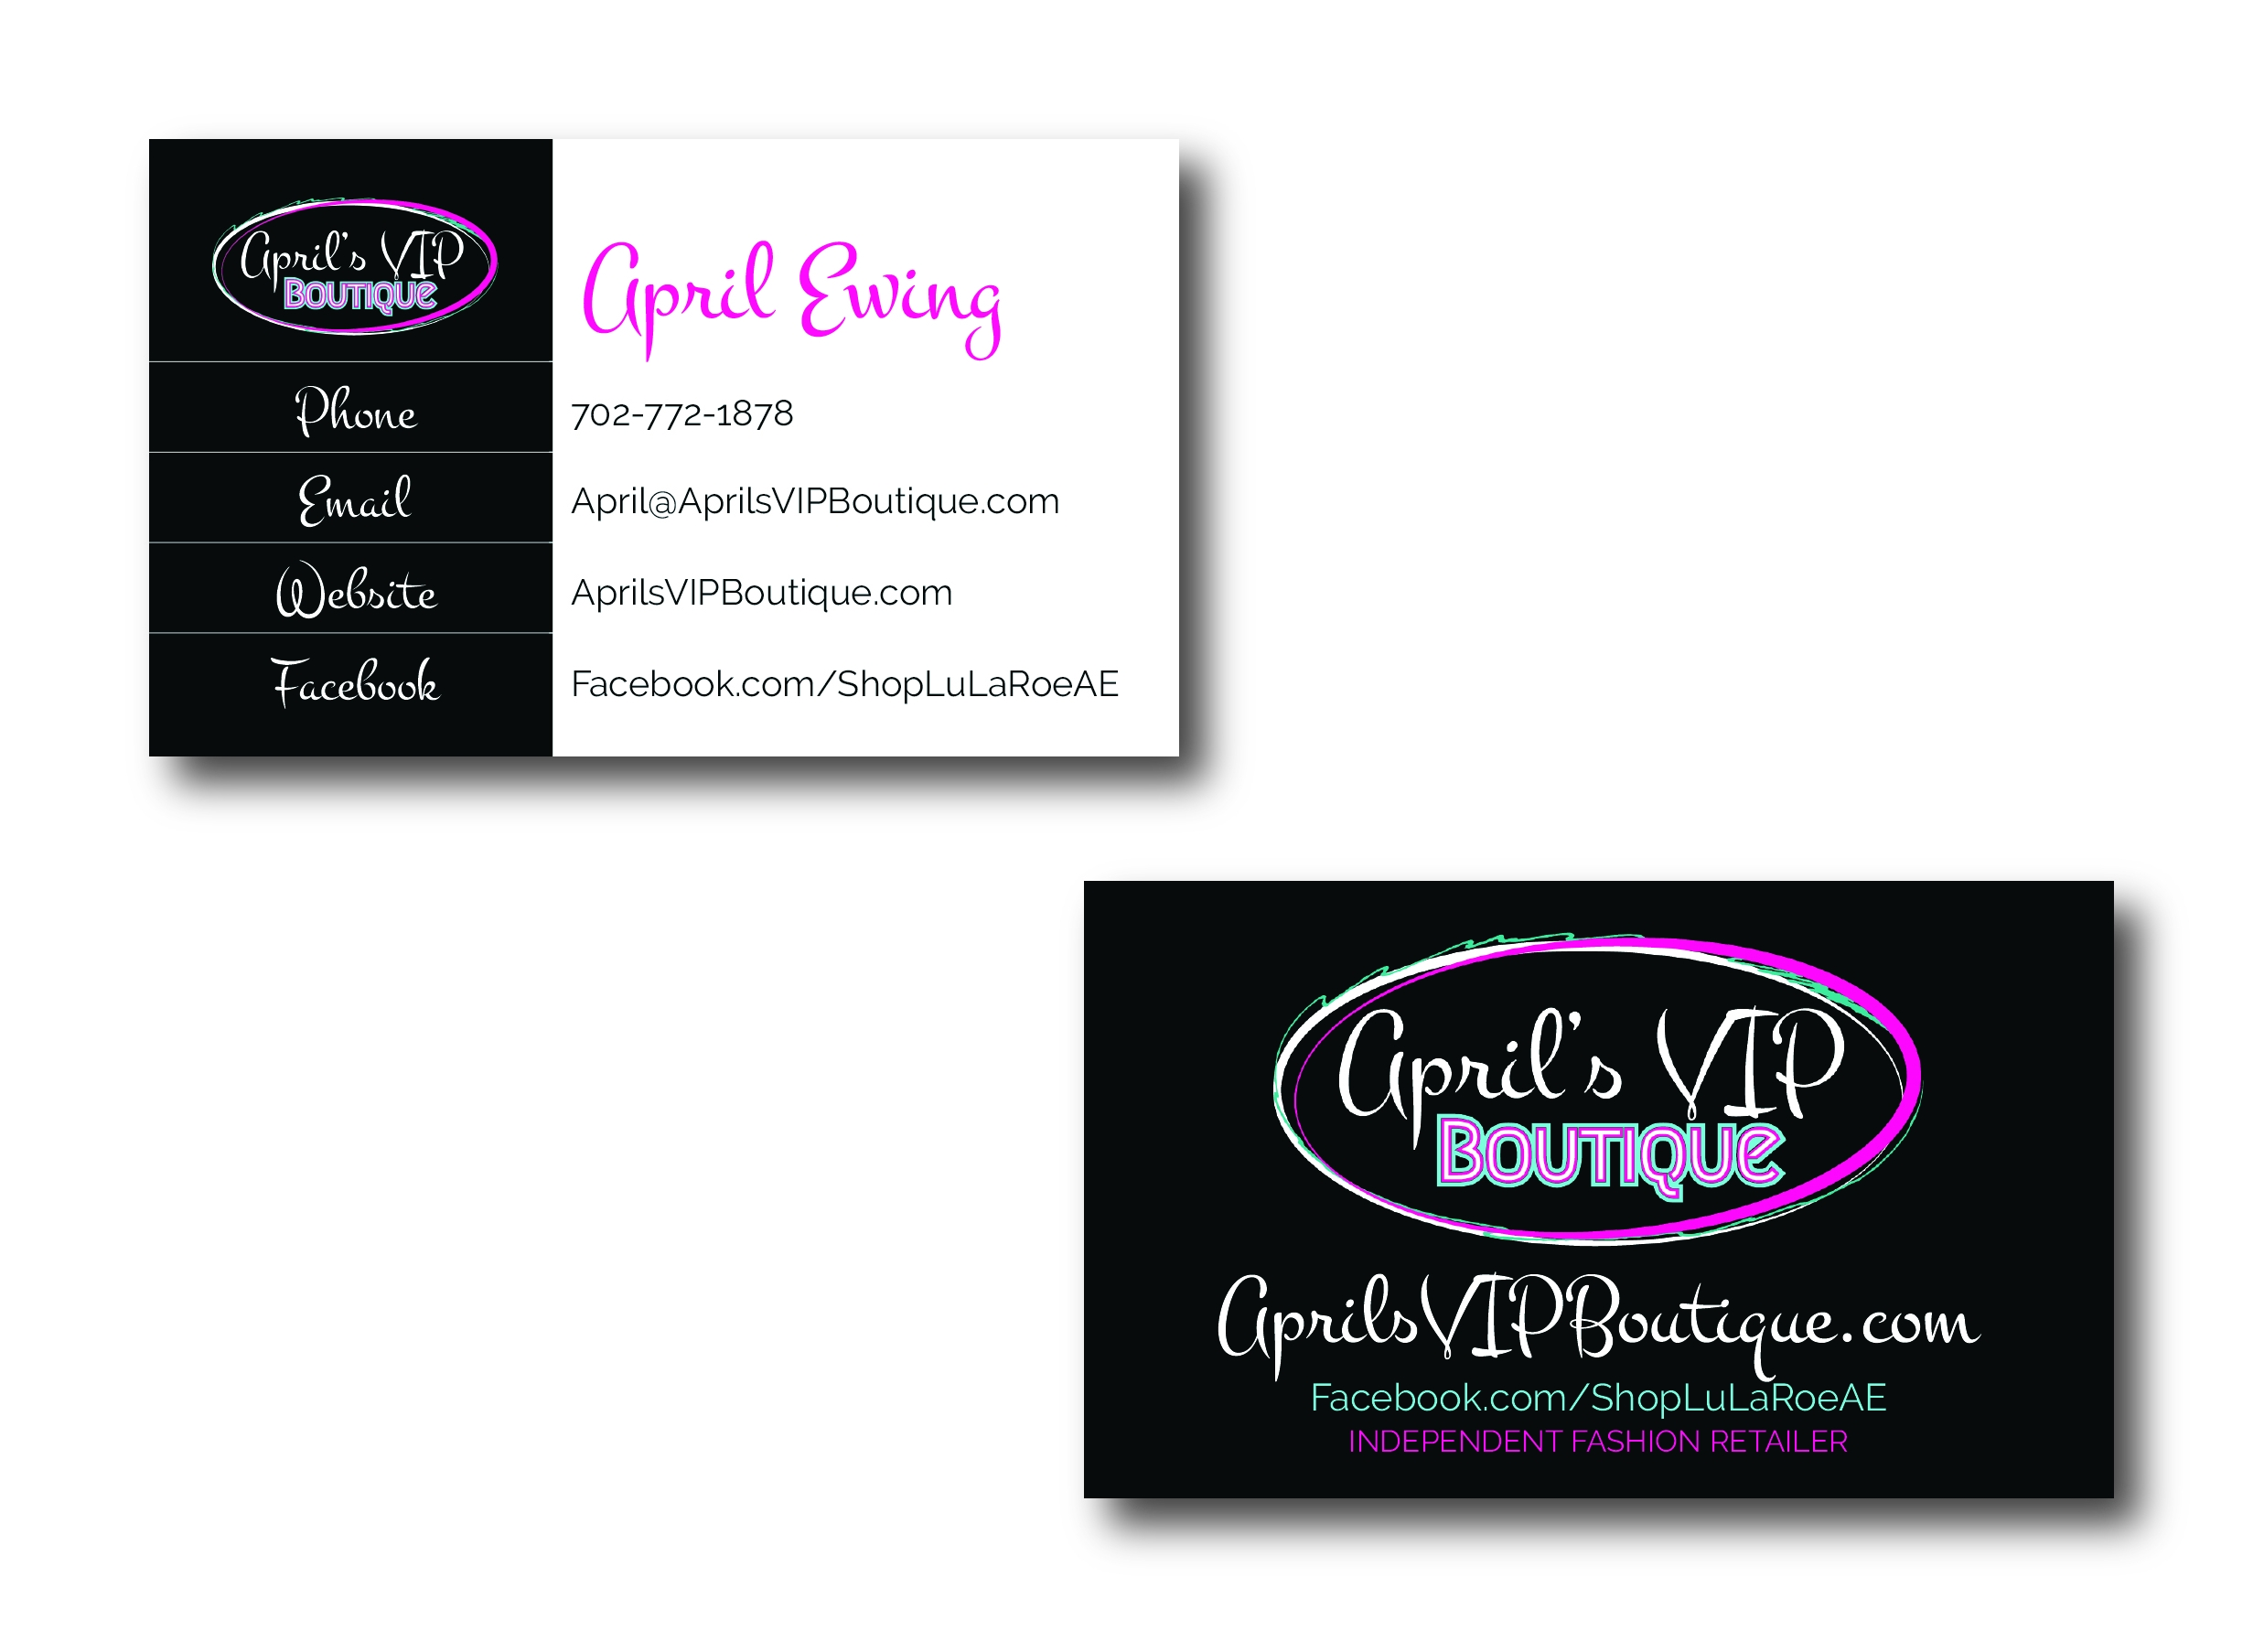 Graphic design custom business card design by tracy technologies view larger image colourmoves